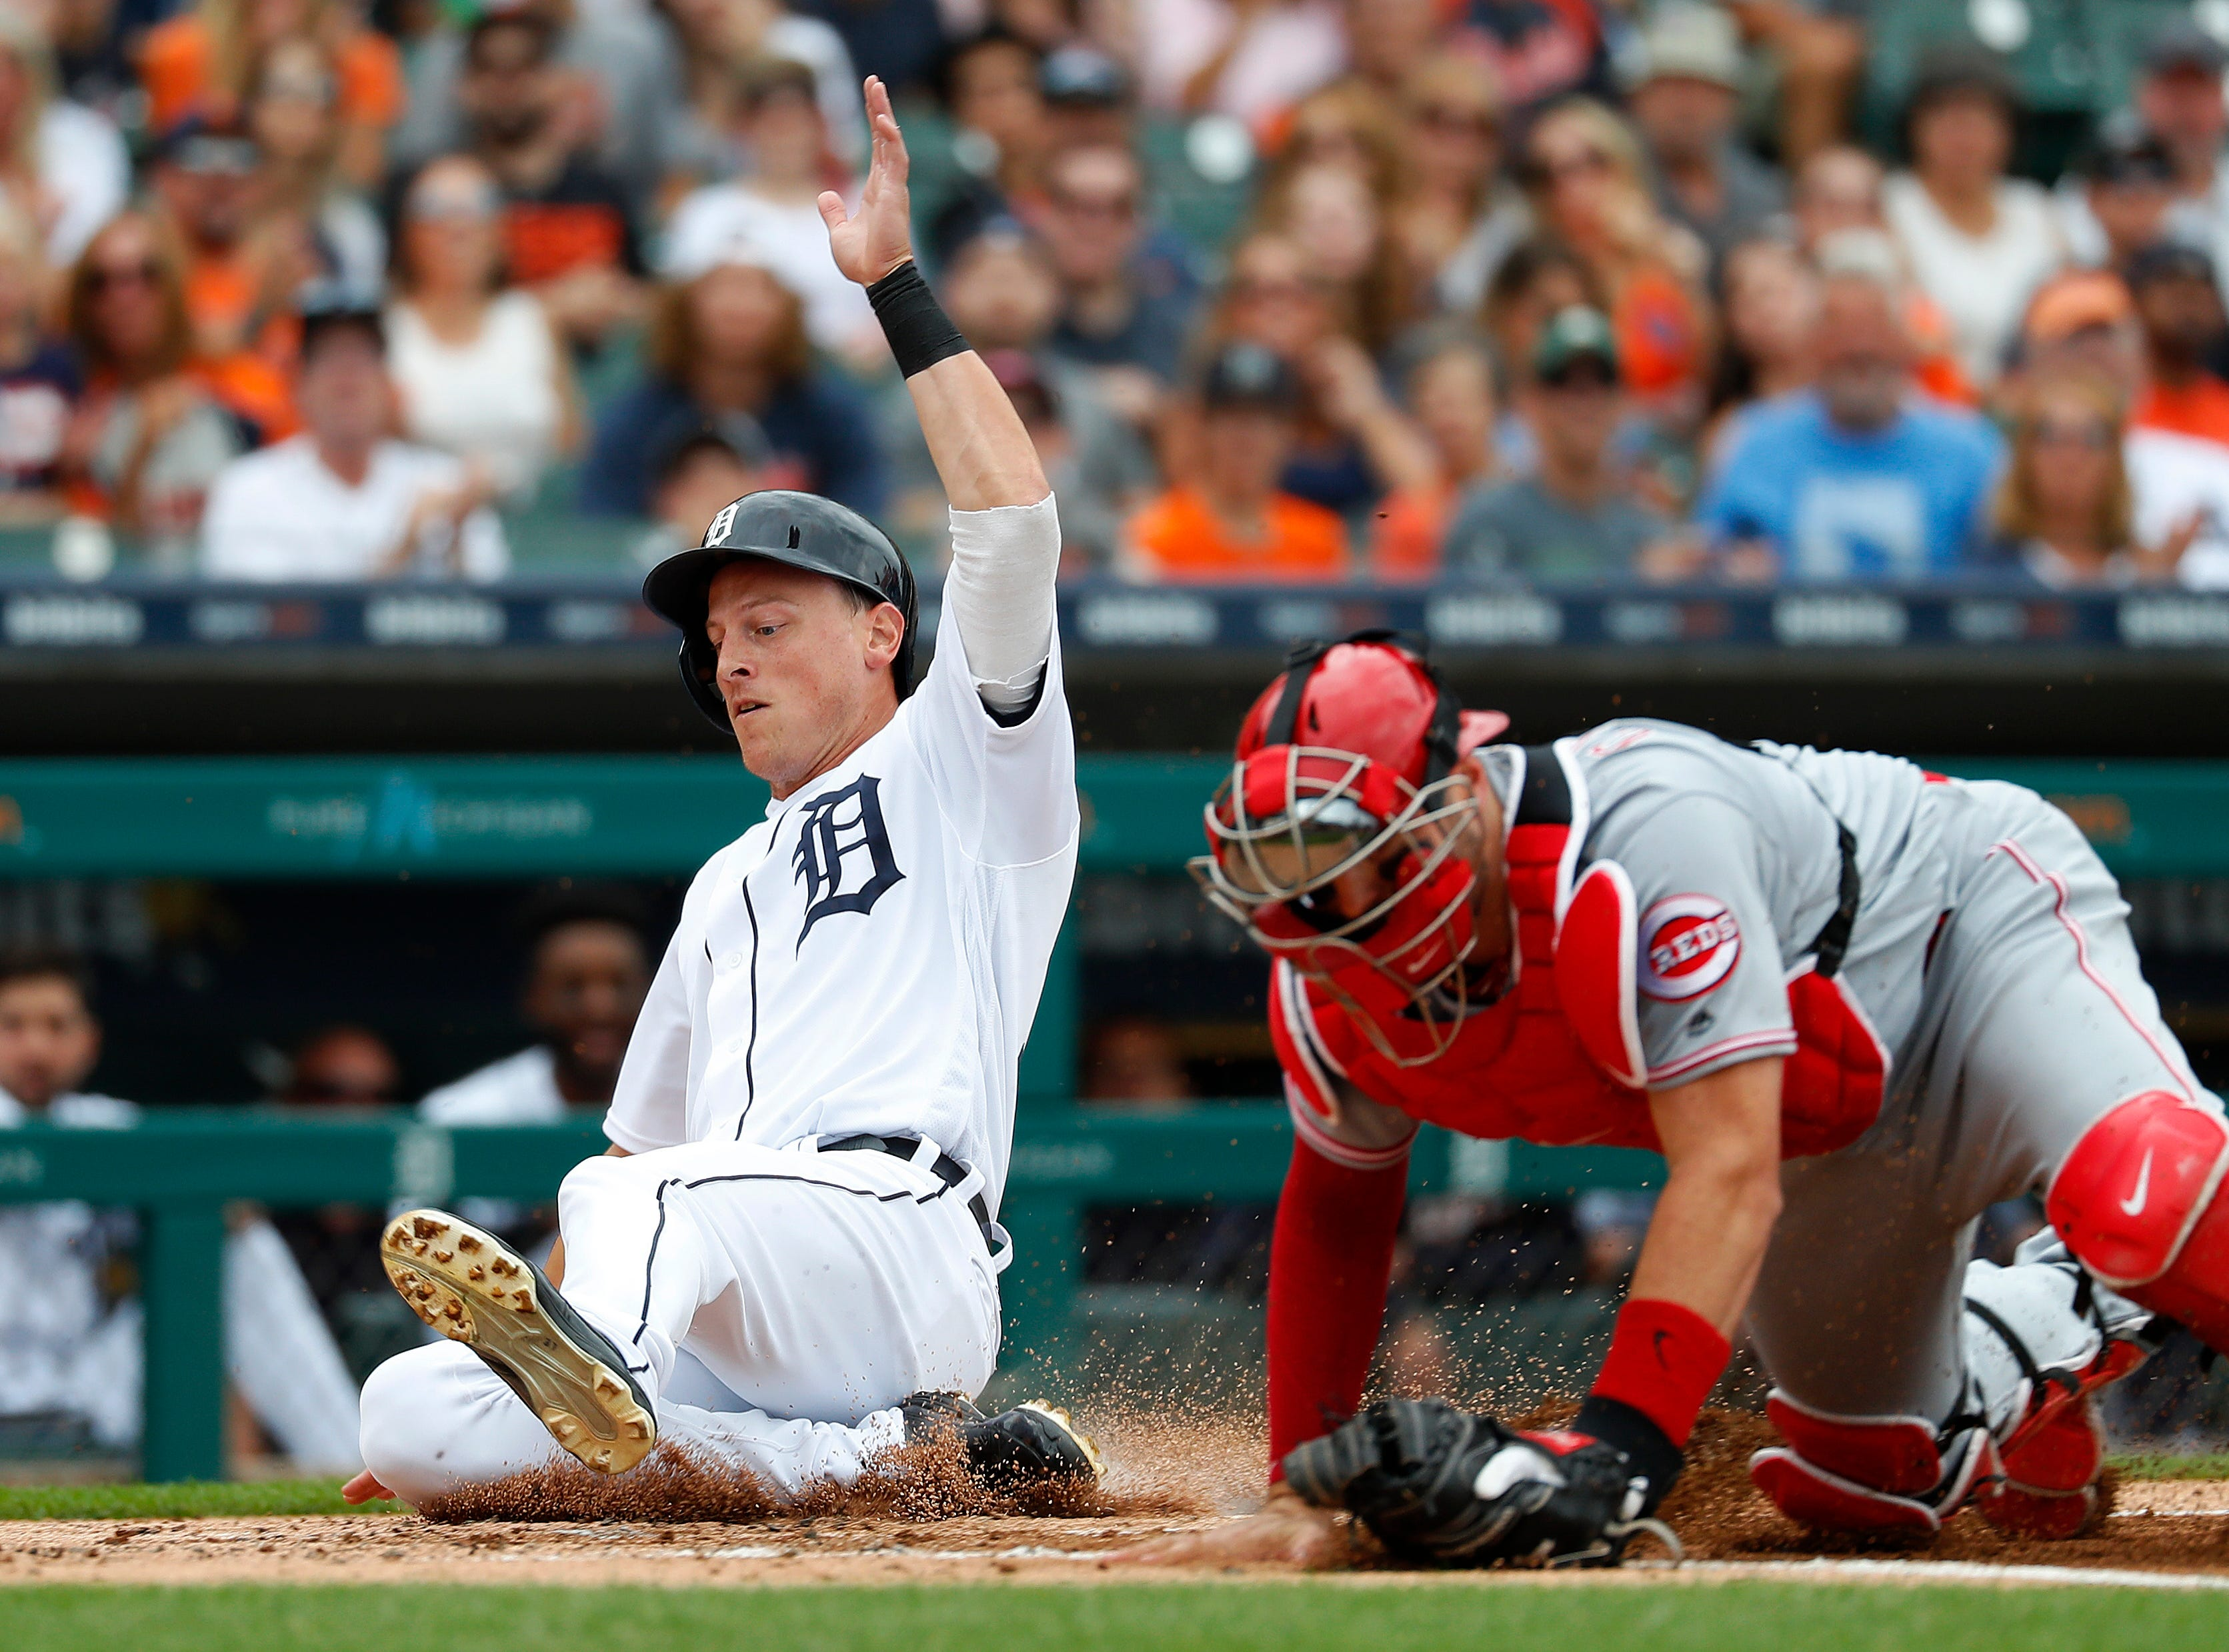 The Detroit Tigers' Jim Adduci slides safely into home plate as Cincinnati Reds catcher Curt Casali reaches for the throw in the second inning in Detroit, Wednesday, Aug. 1, 2018.  The Tigers won, 7-4.